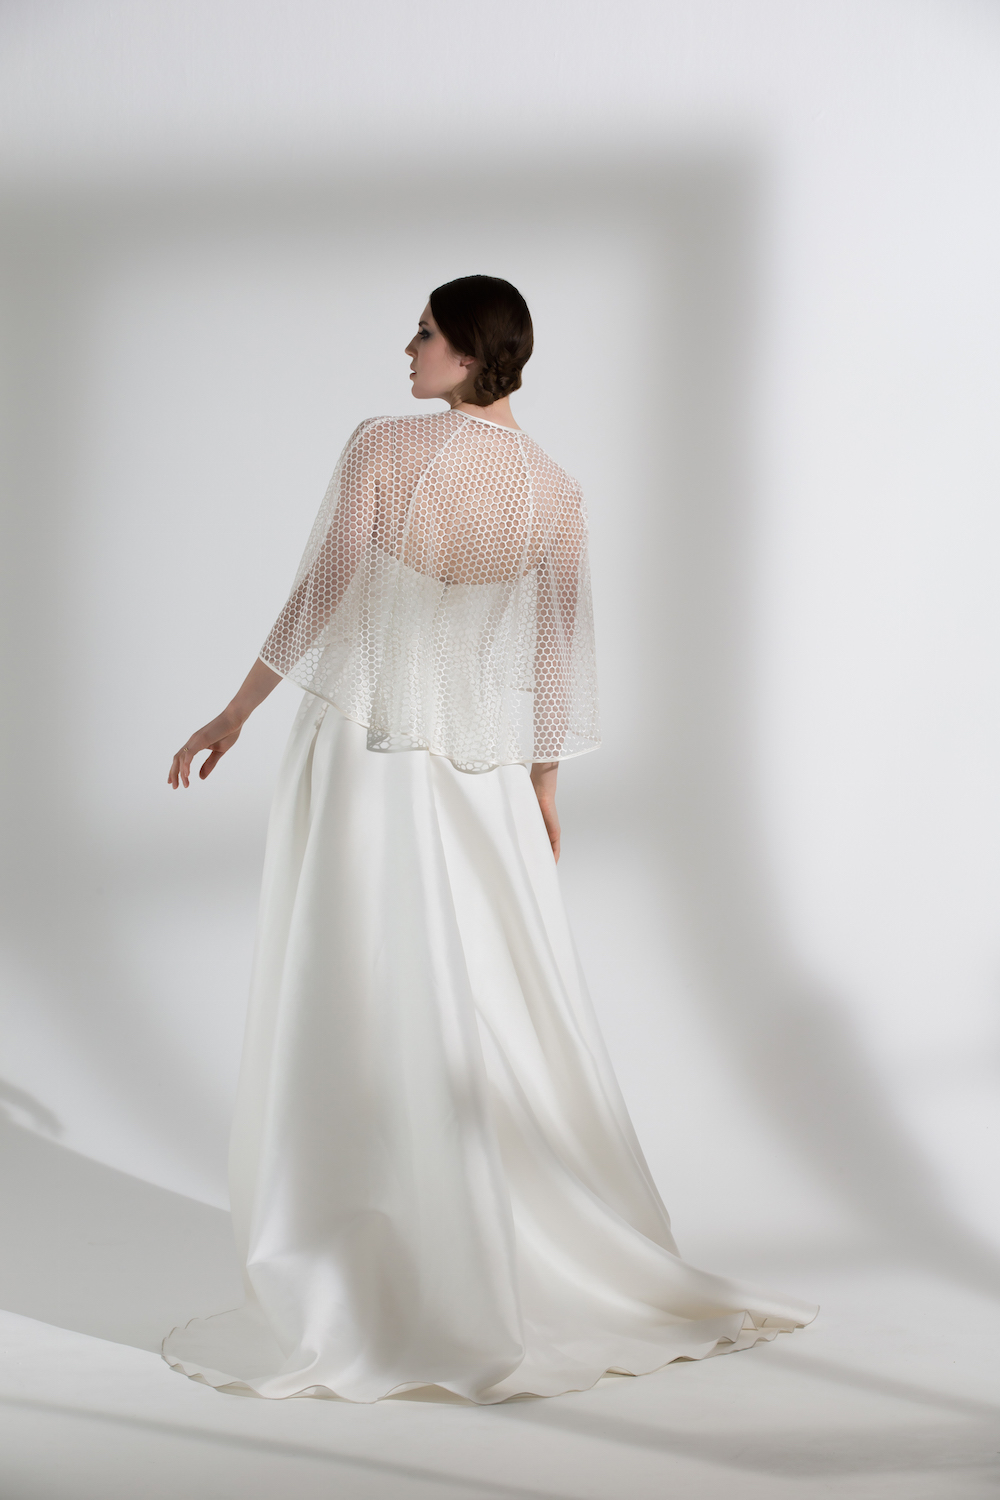 HONEYSUCKLE CAPE & ELLIE DRESS | WEDDING DRESS BY HALFPENNY LONDON